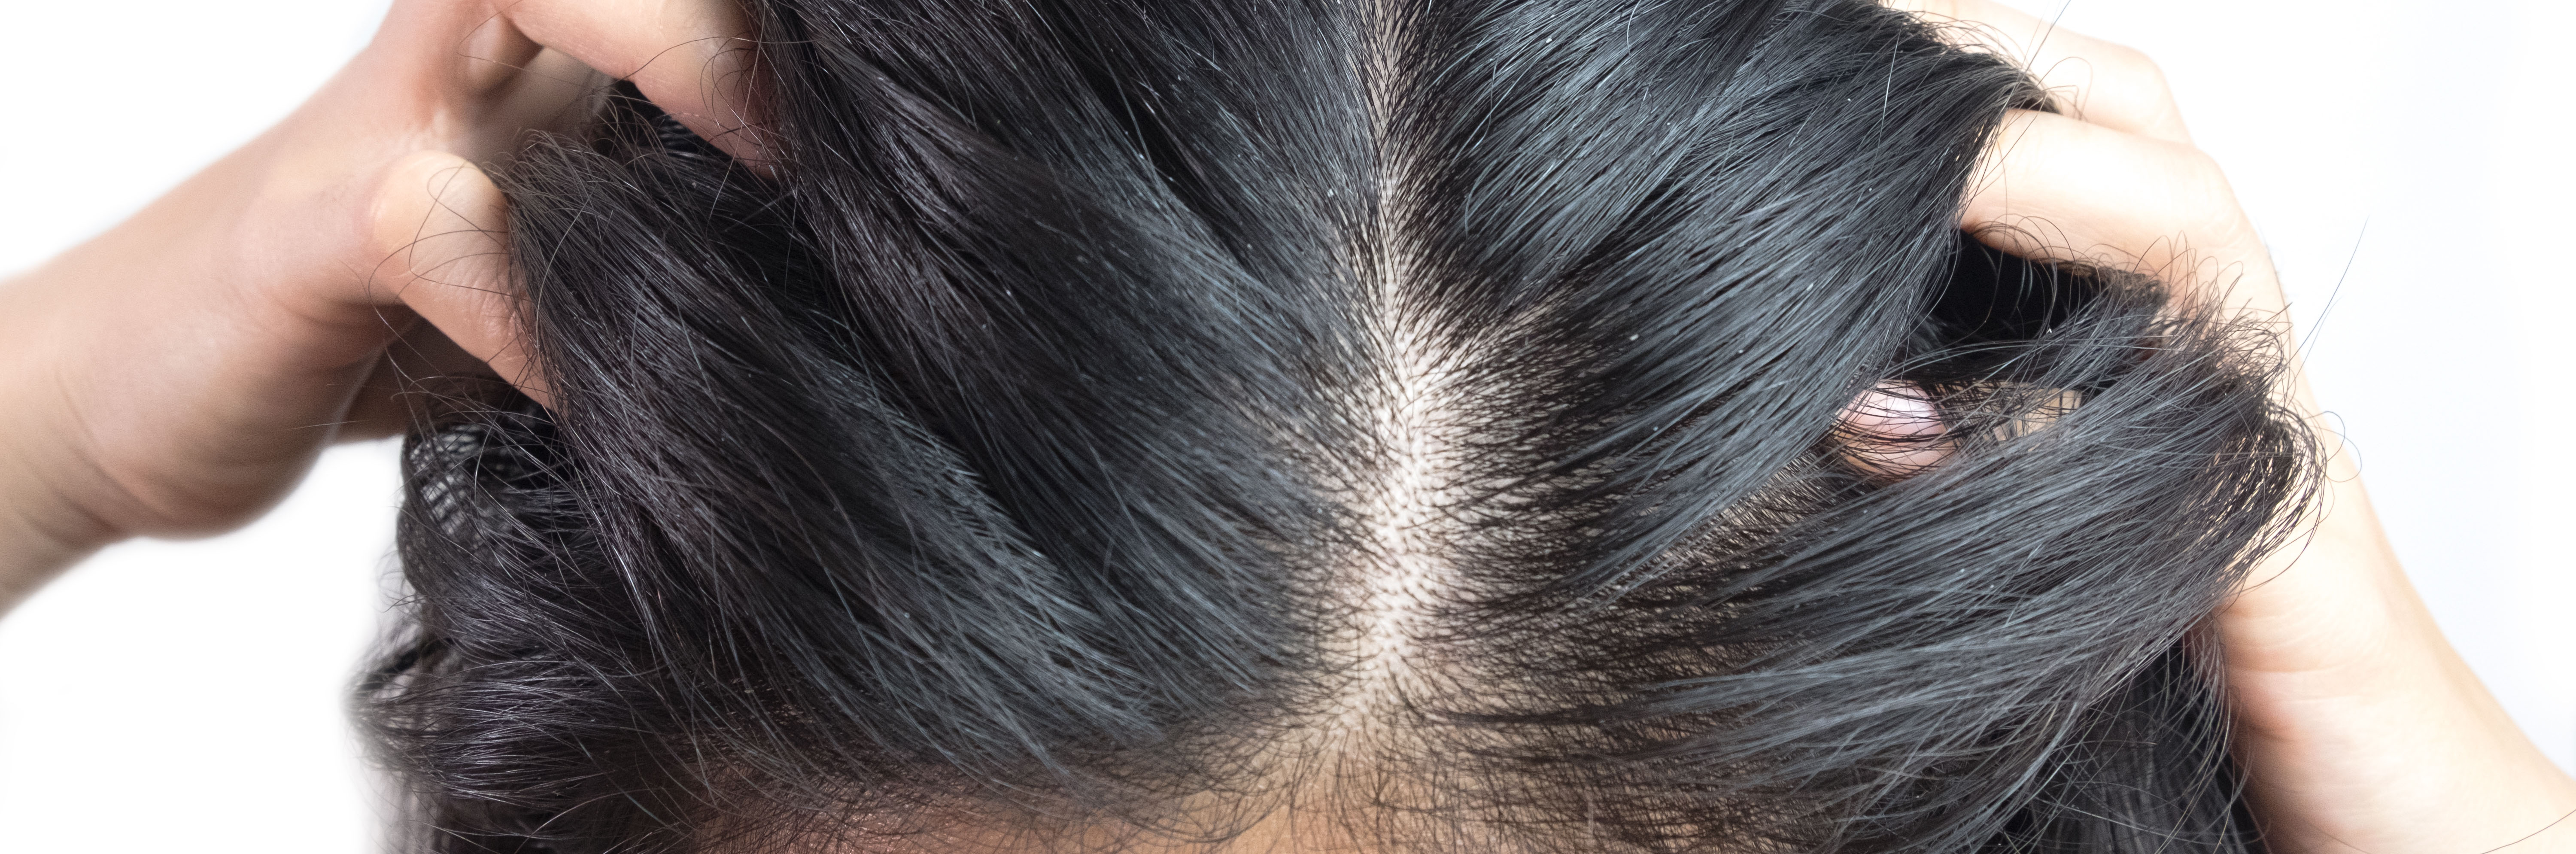 Psoriasis and Hair Loss: Is it Connected